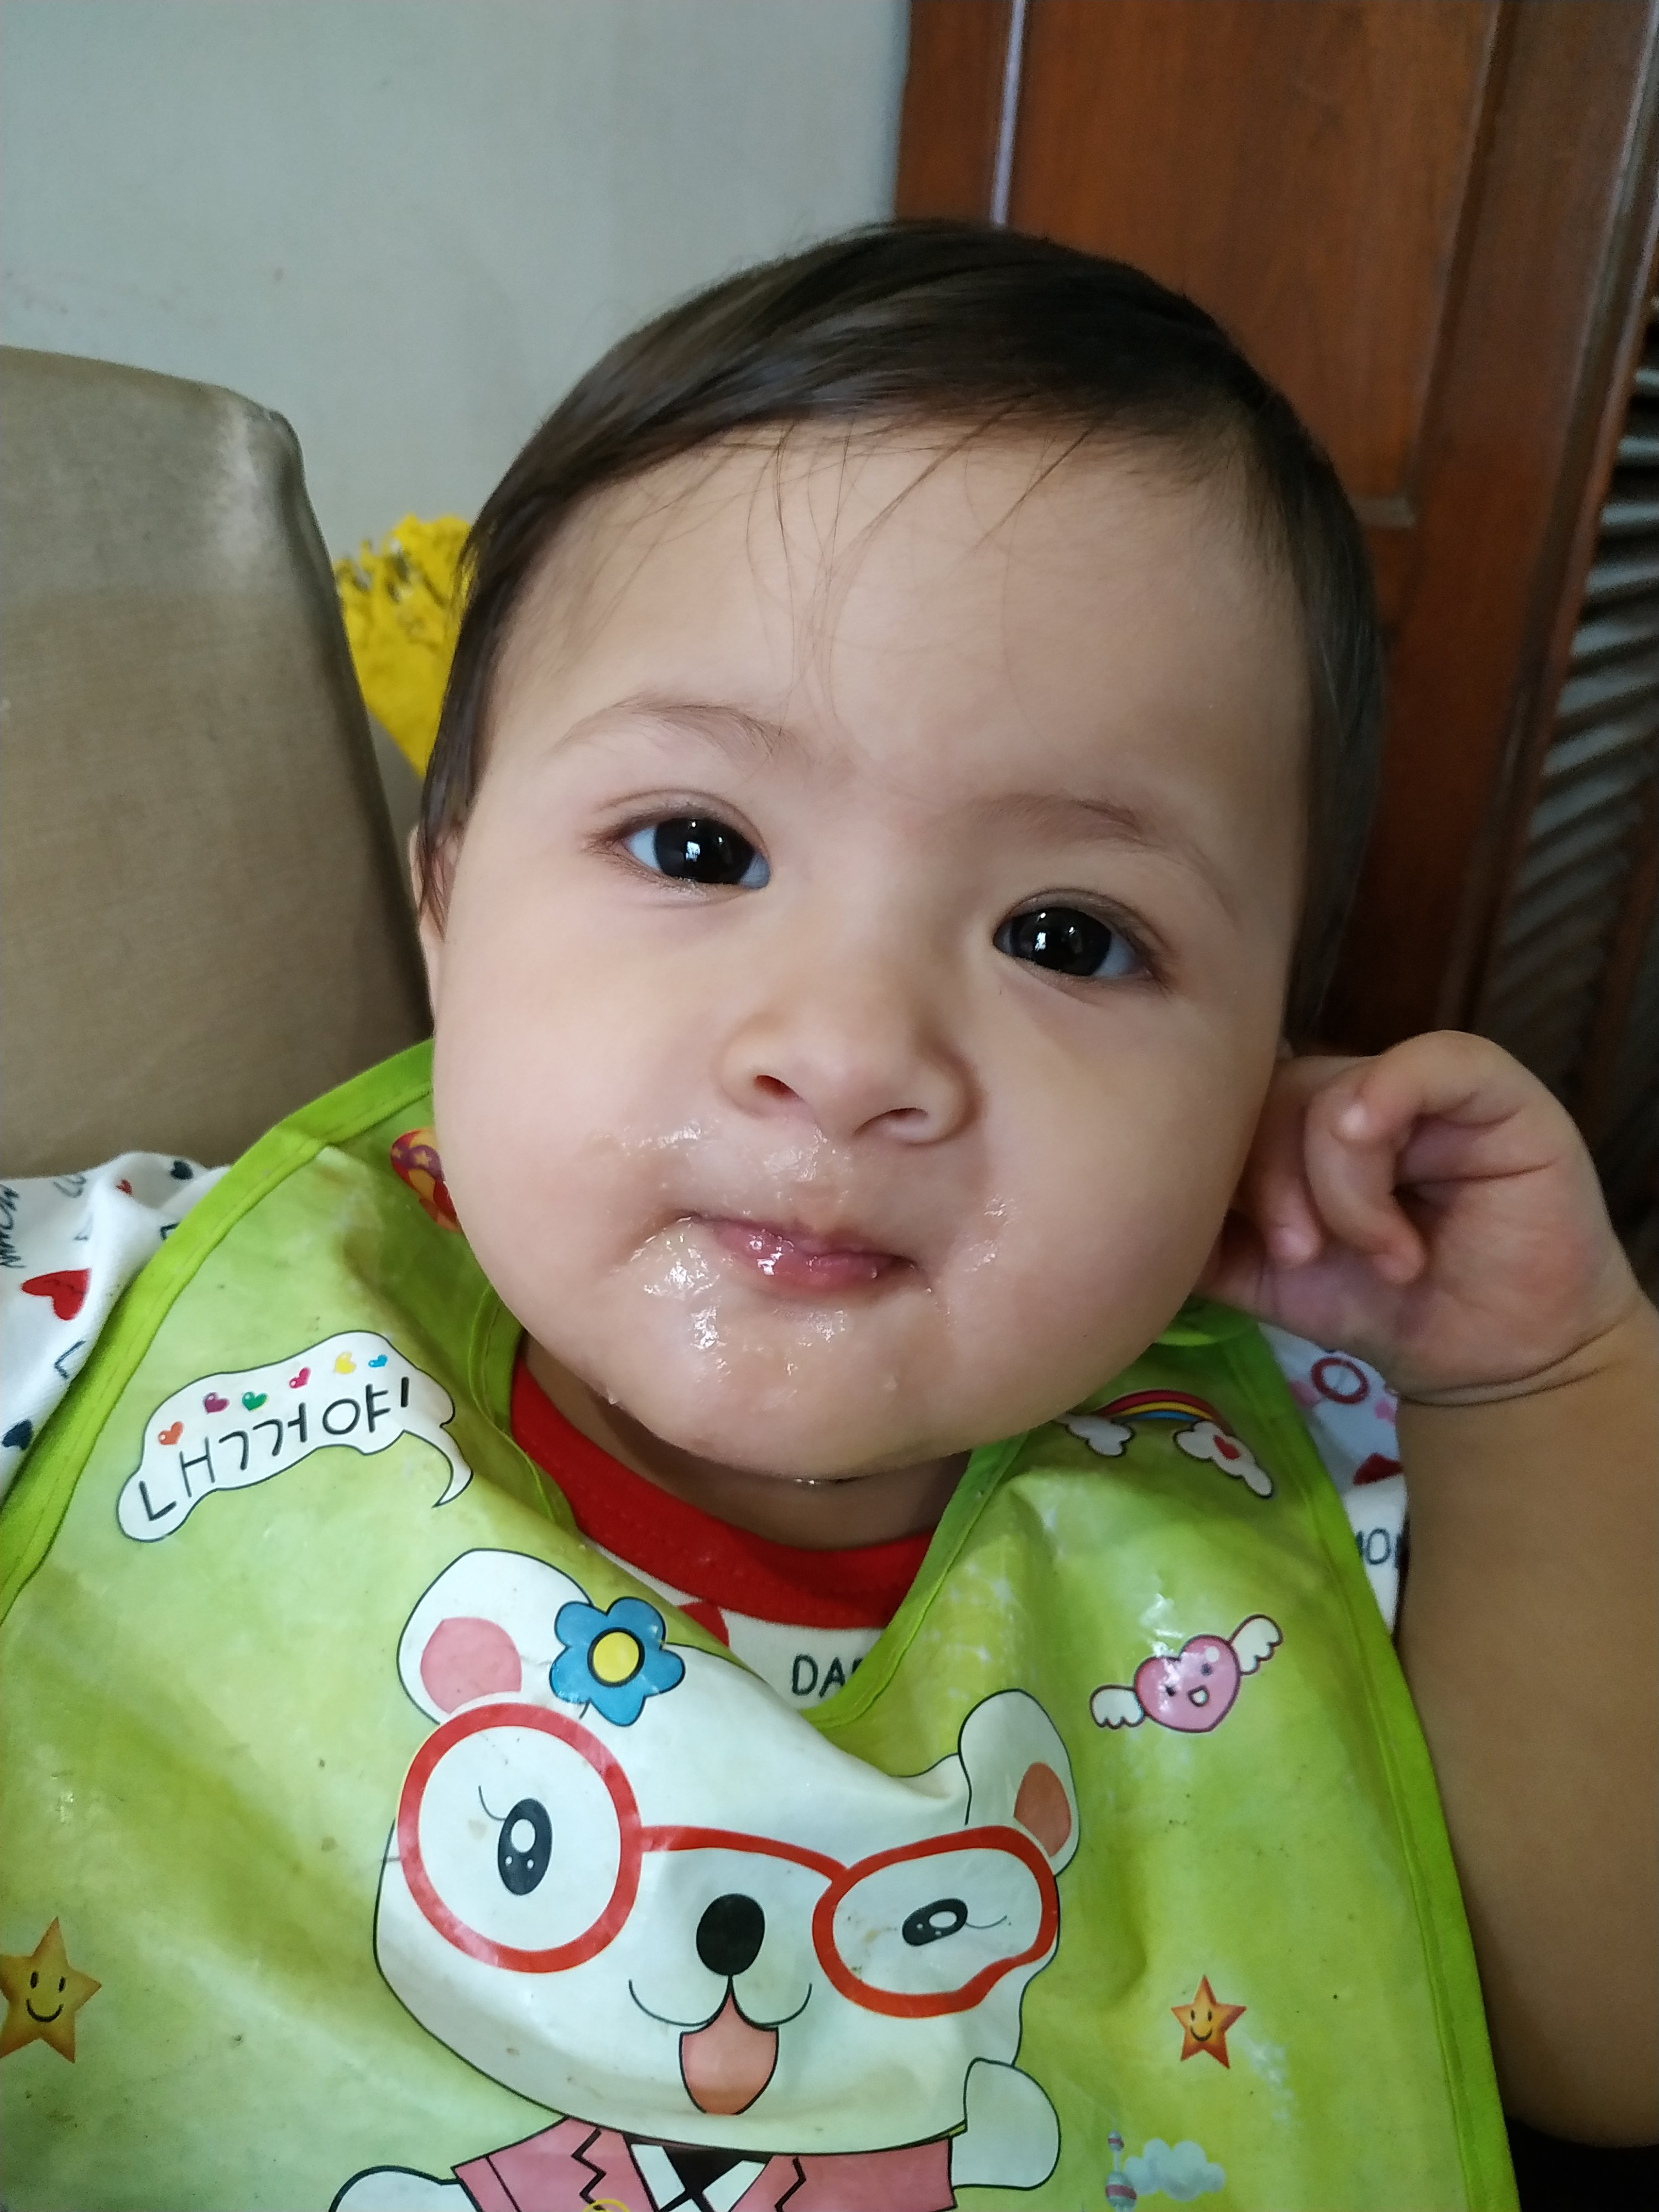 When and how to start solids to babies?